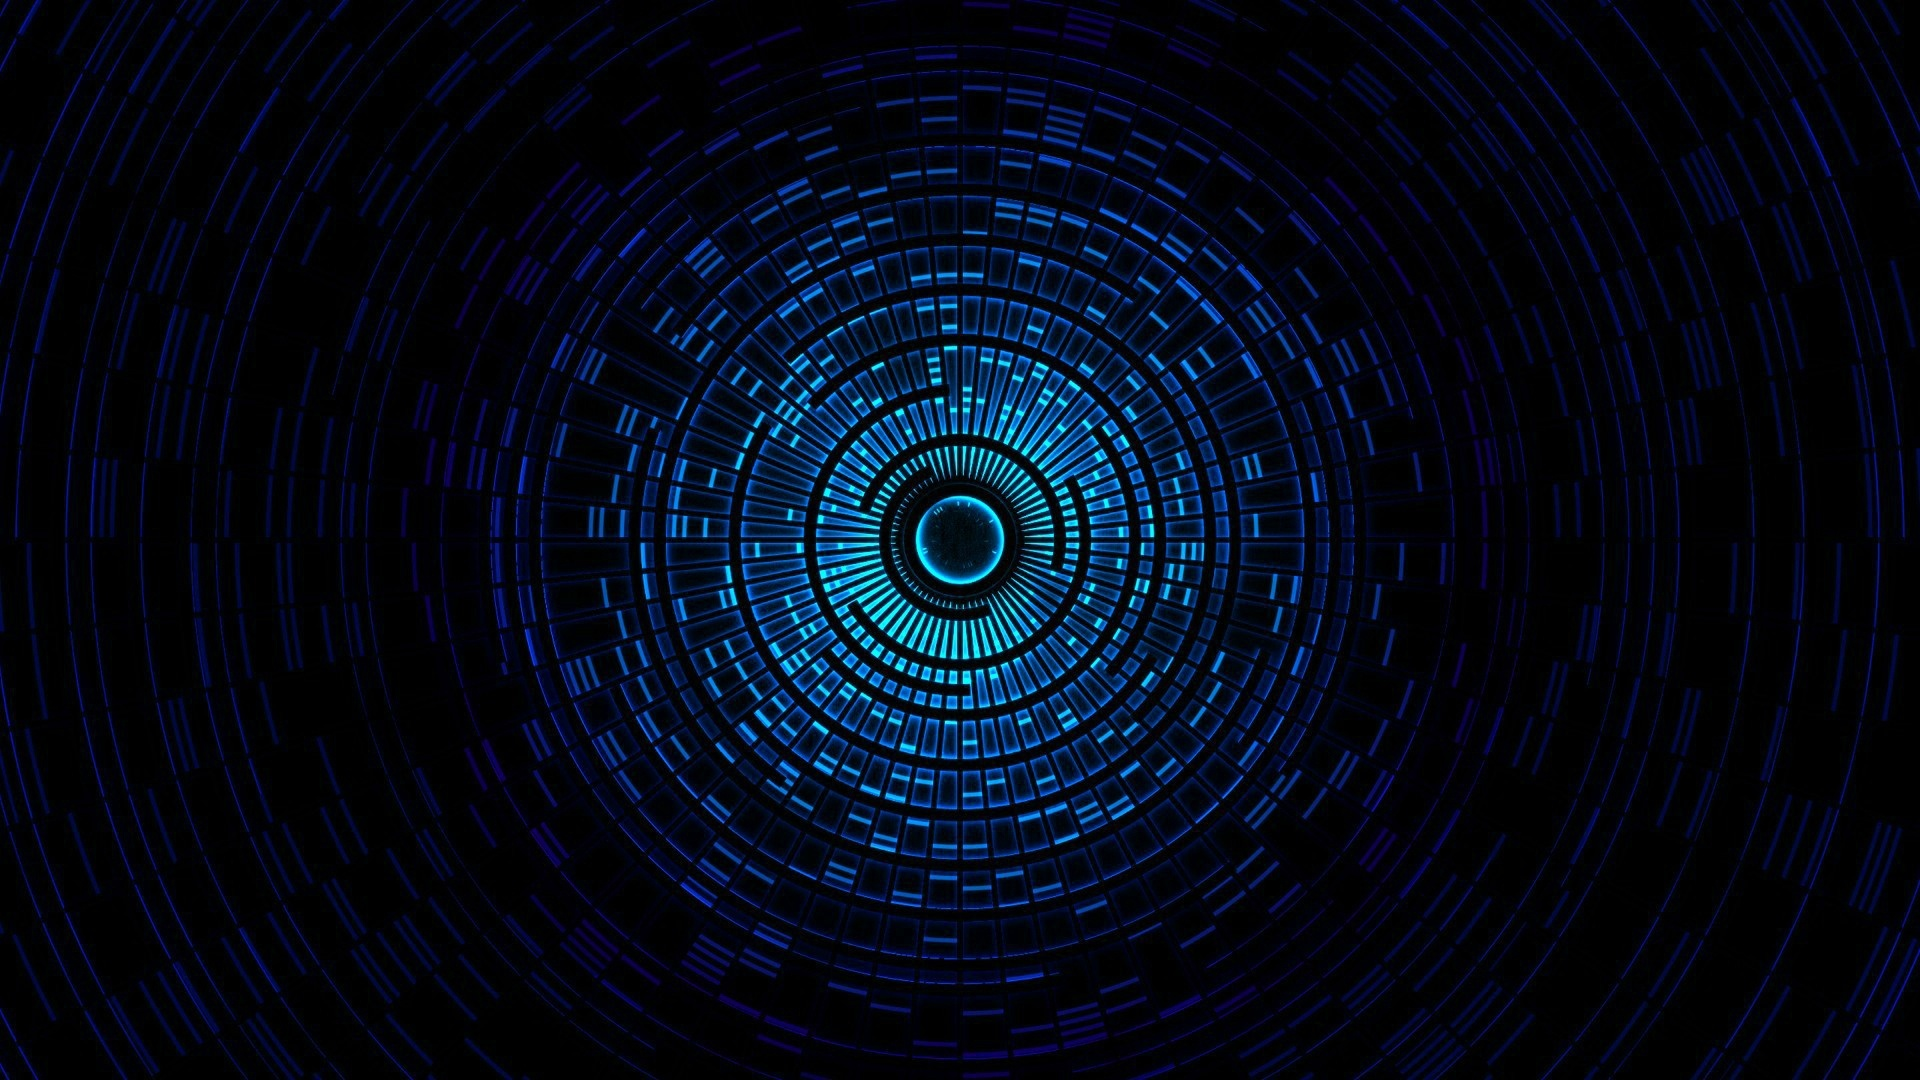 Space Tunnel wallpaper for computer